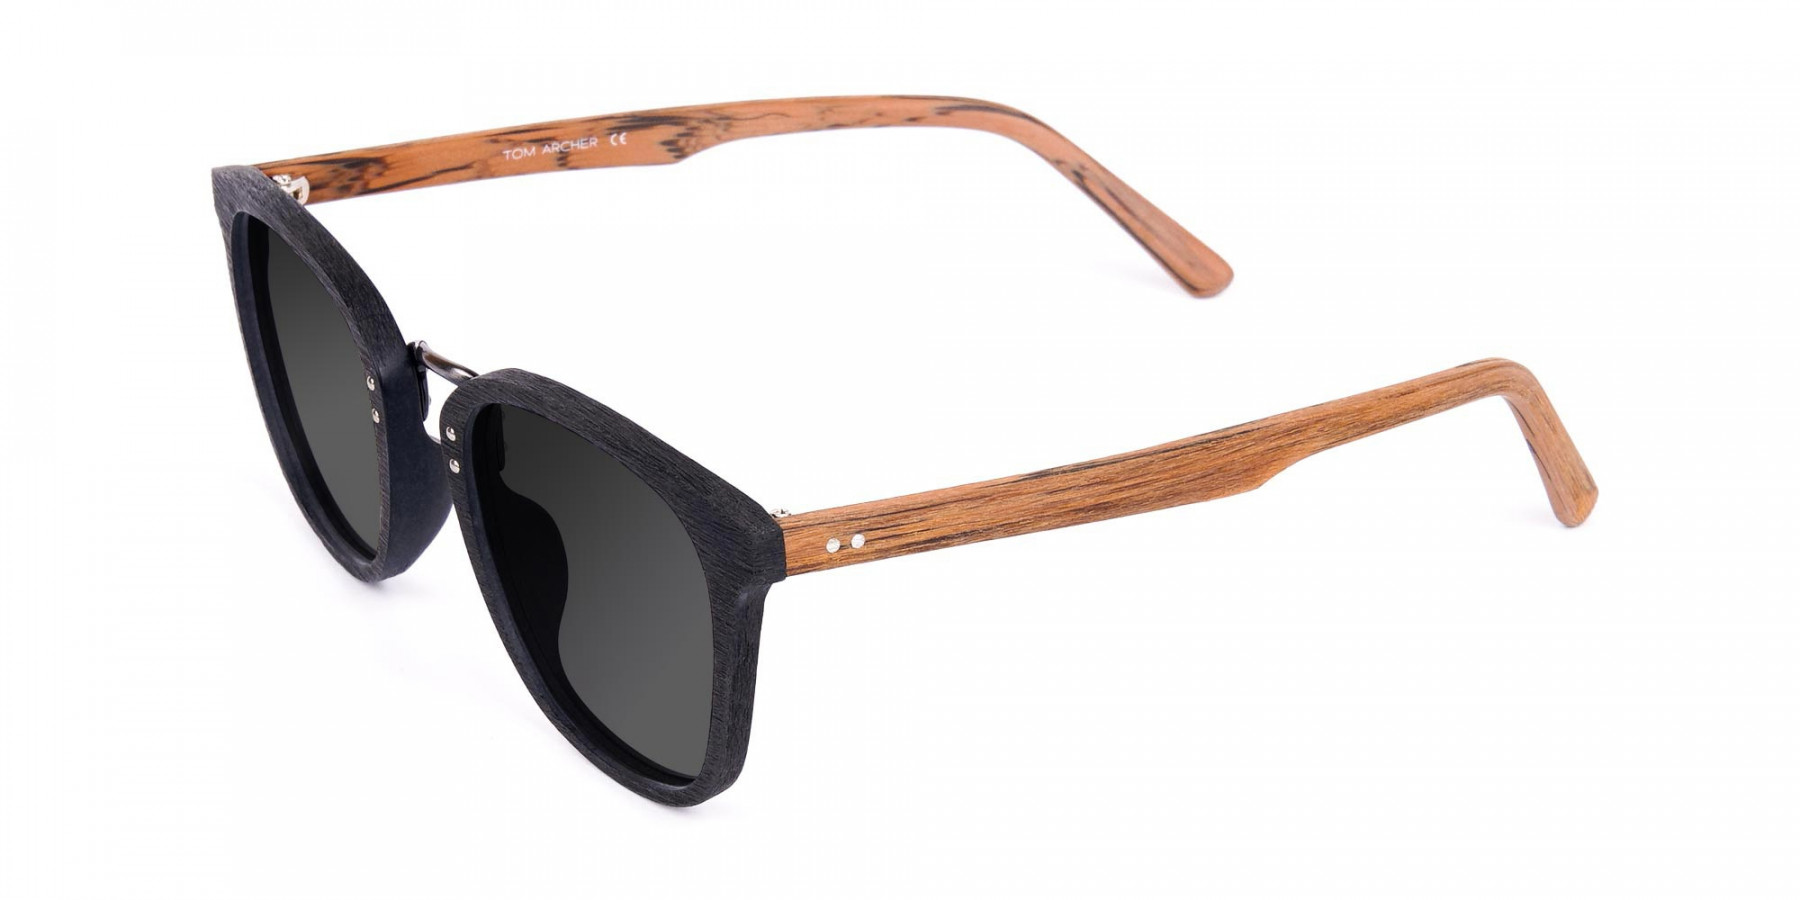 Wood-Black-Frame-Square-Sunglasses-with-Grey-Tint-3